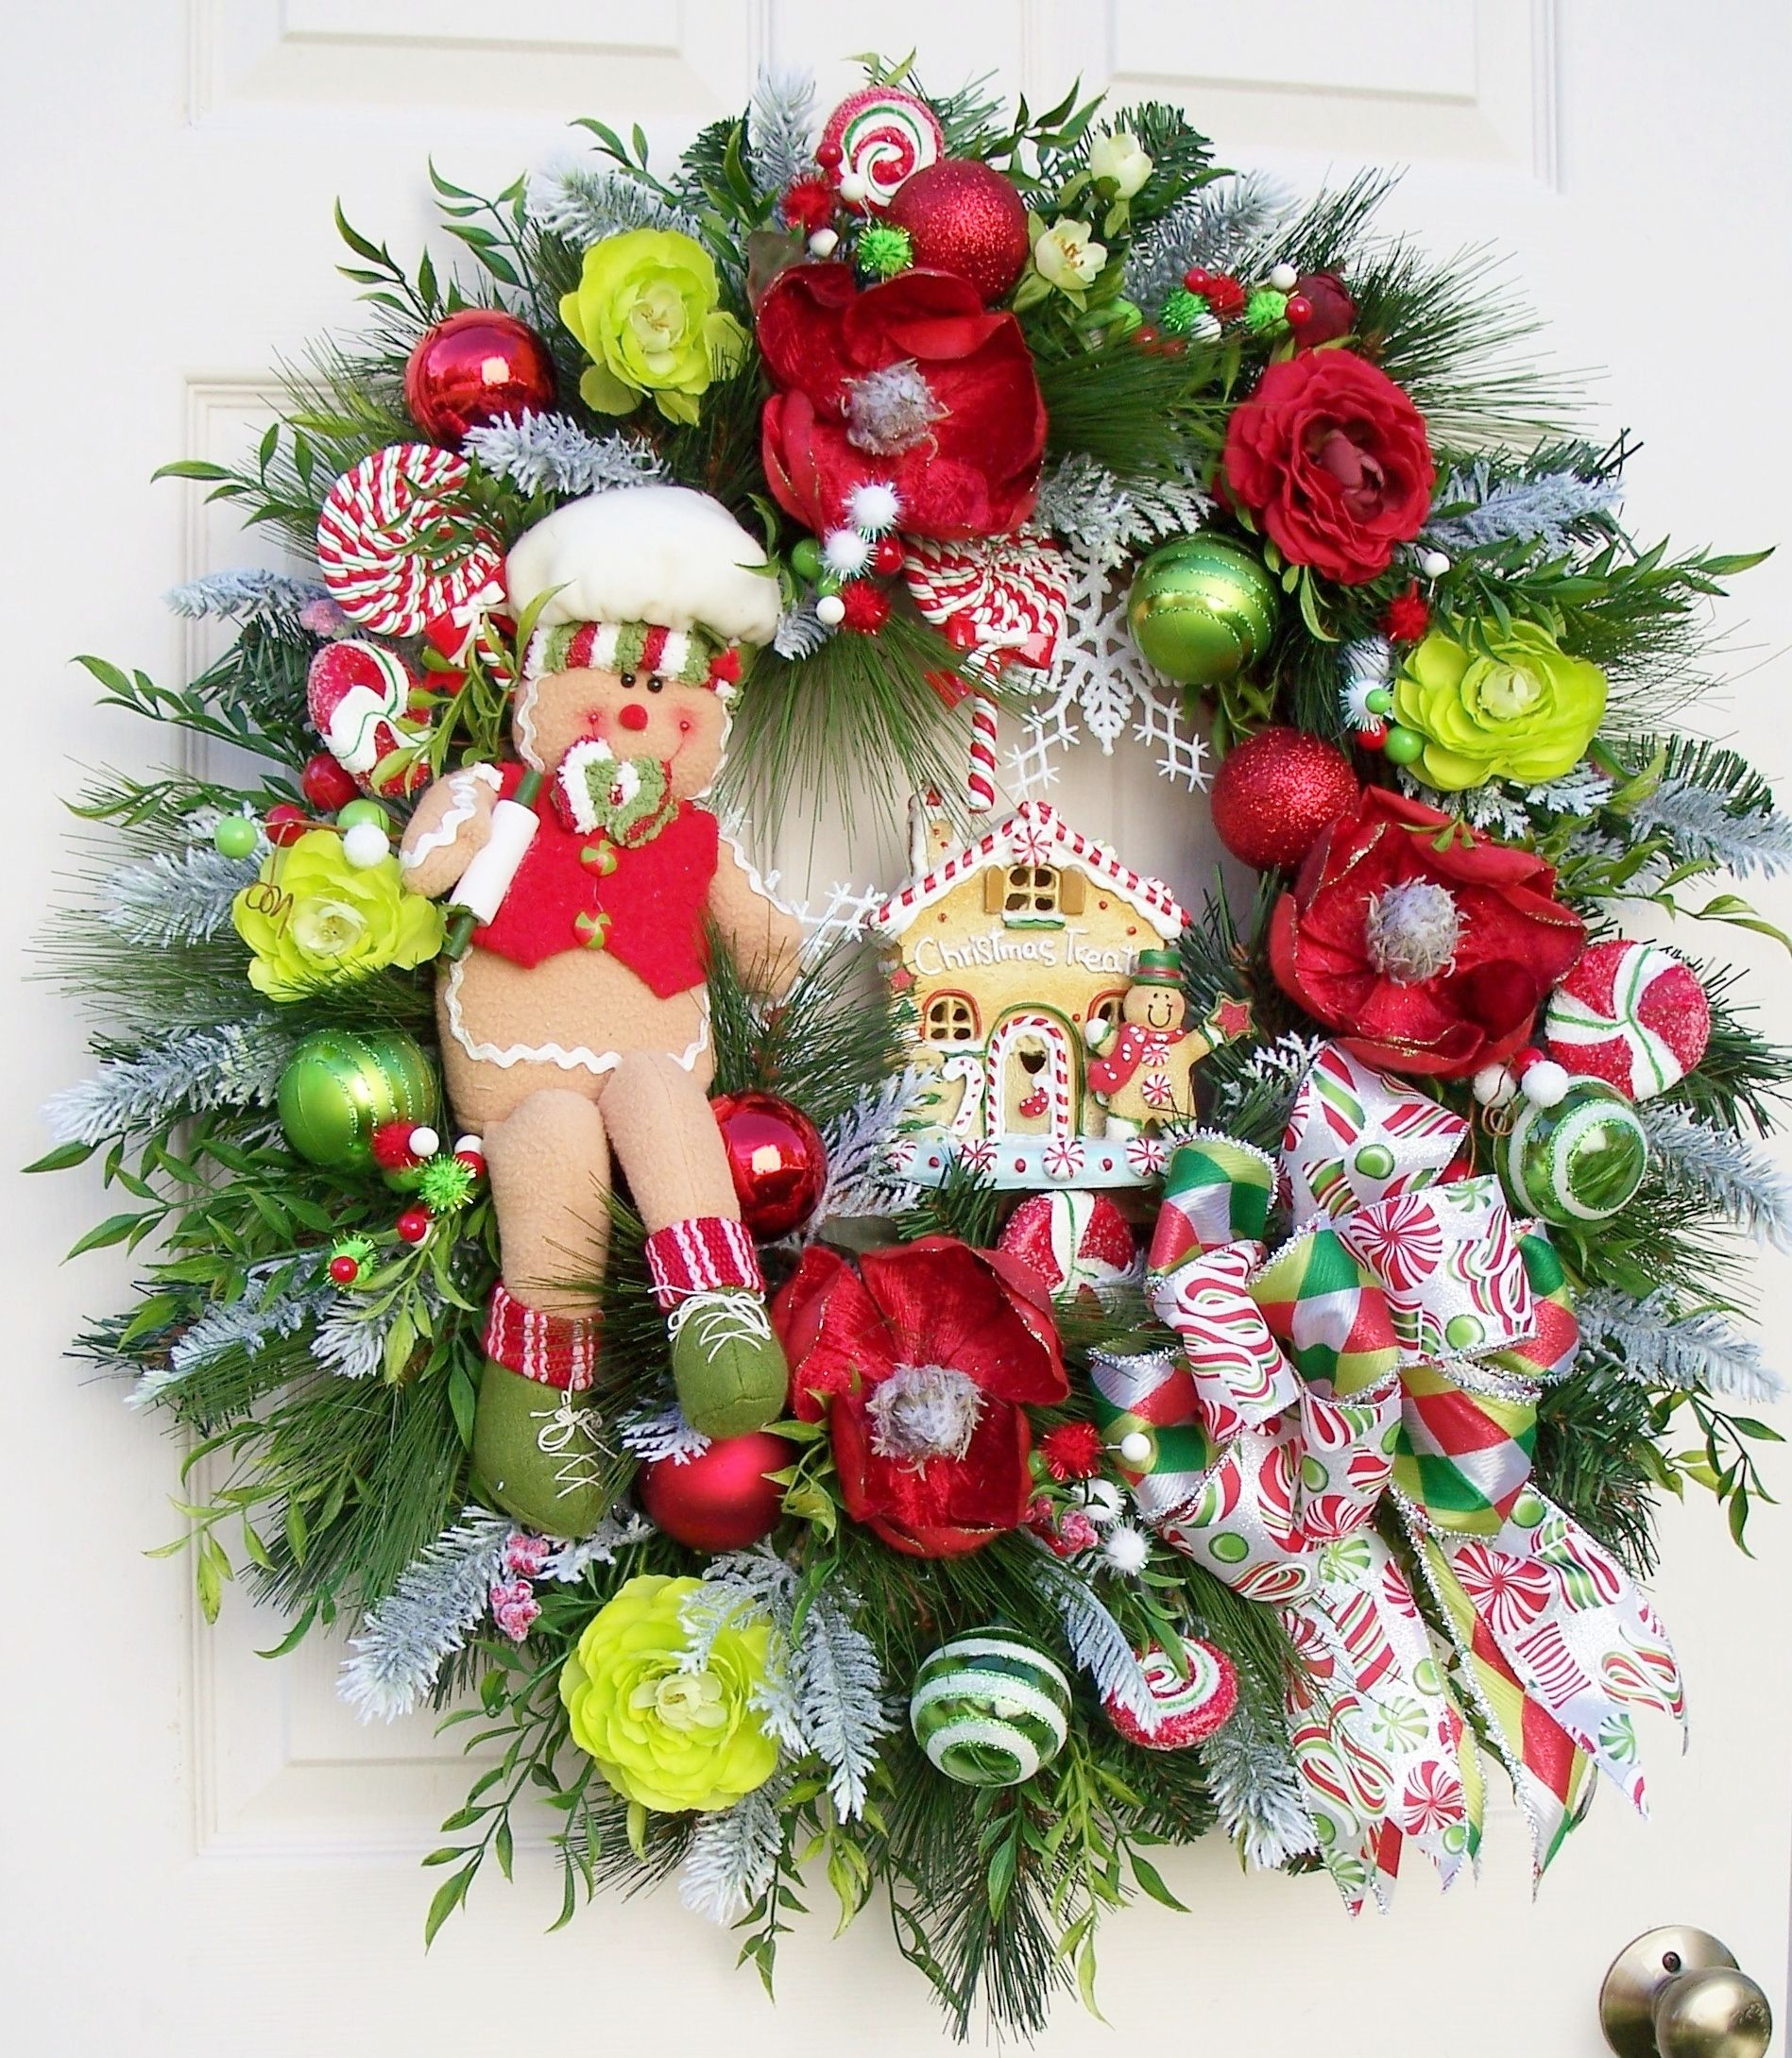 Christmas wreath--gingerbread house. http://www.timelessfloralcreations.com/